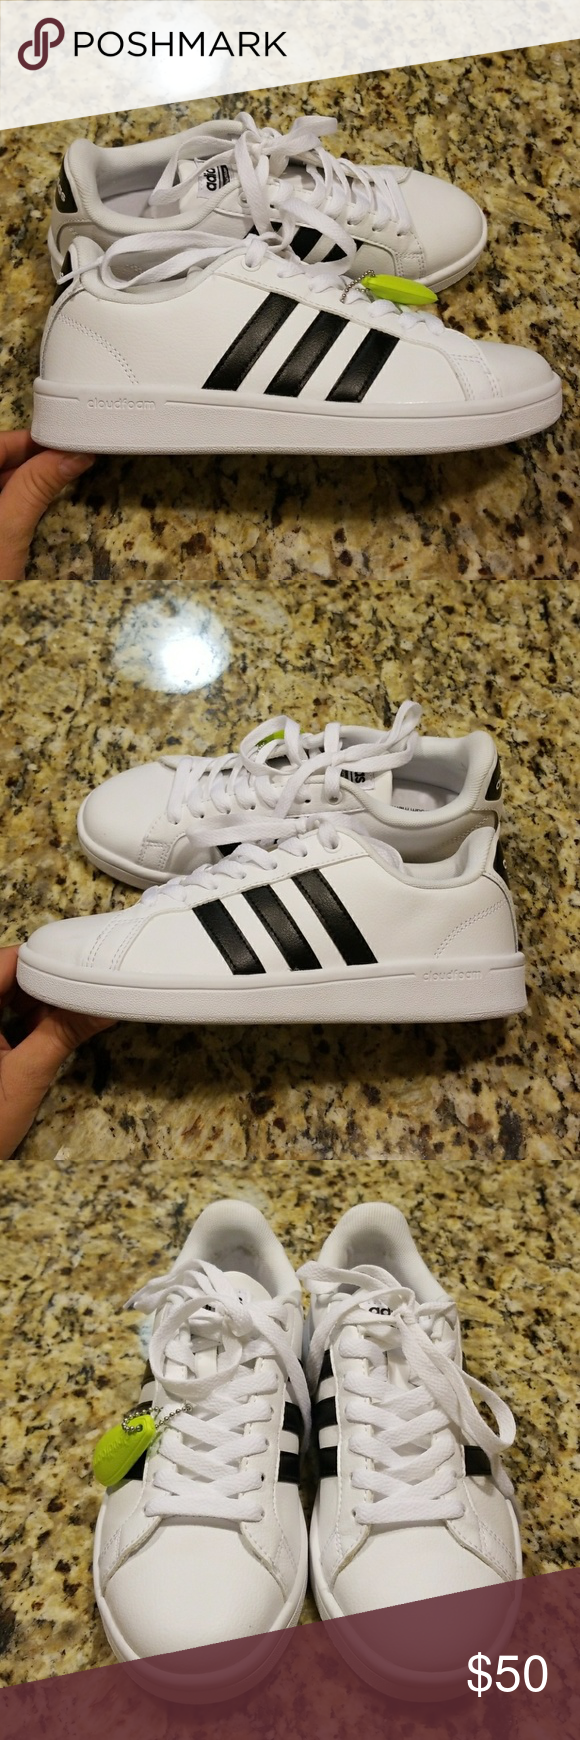 nwot donne adidas neo cloudfoam aw4287 pinterest athletic